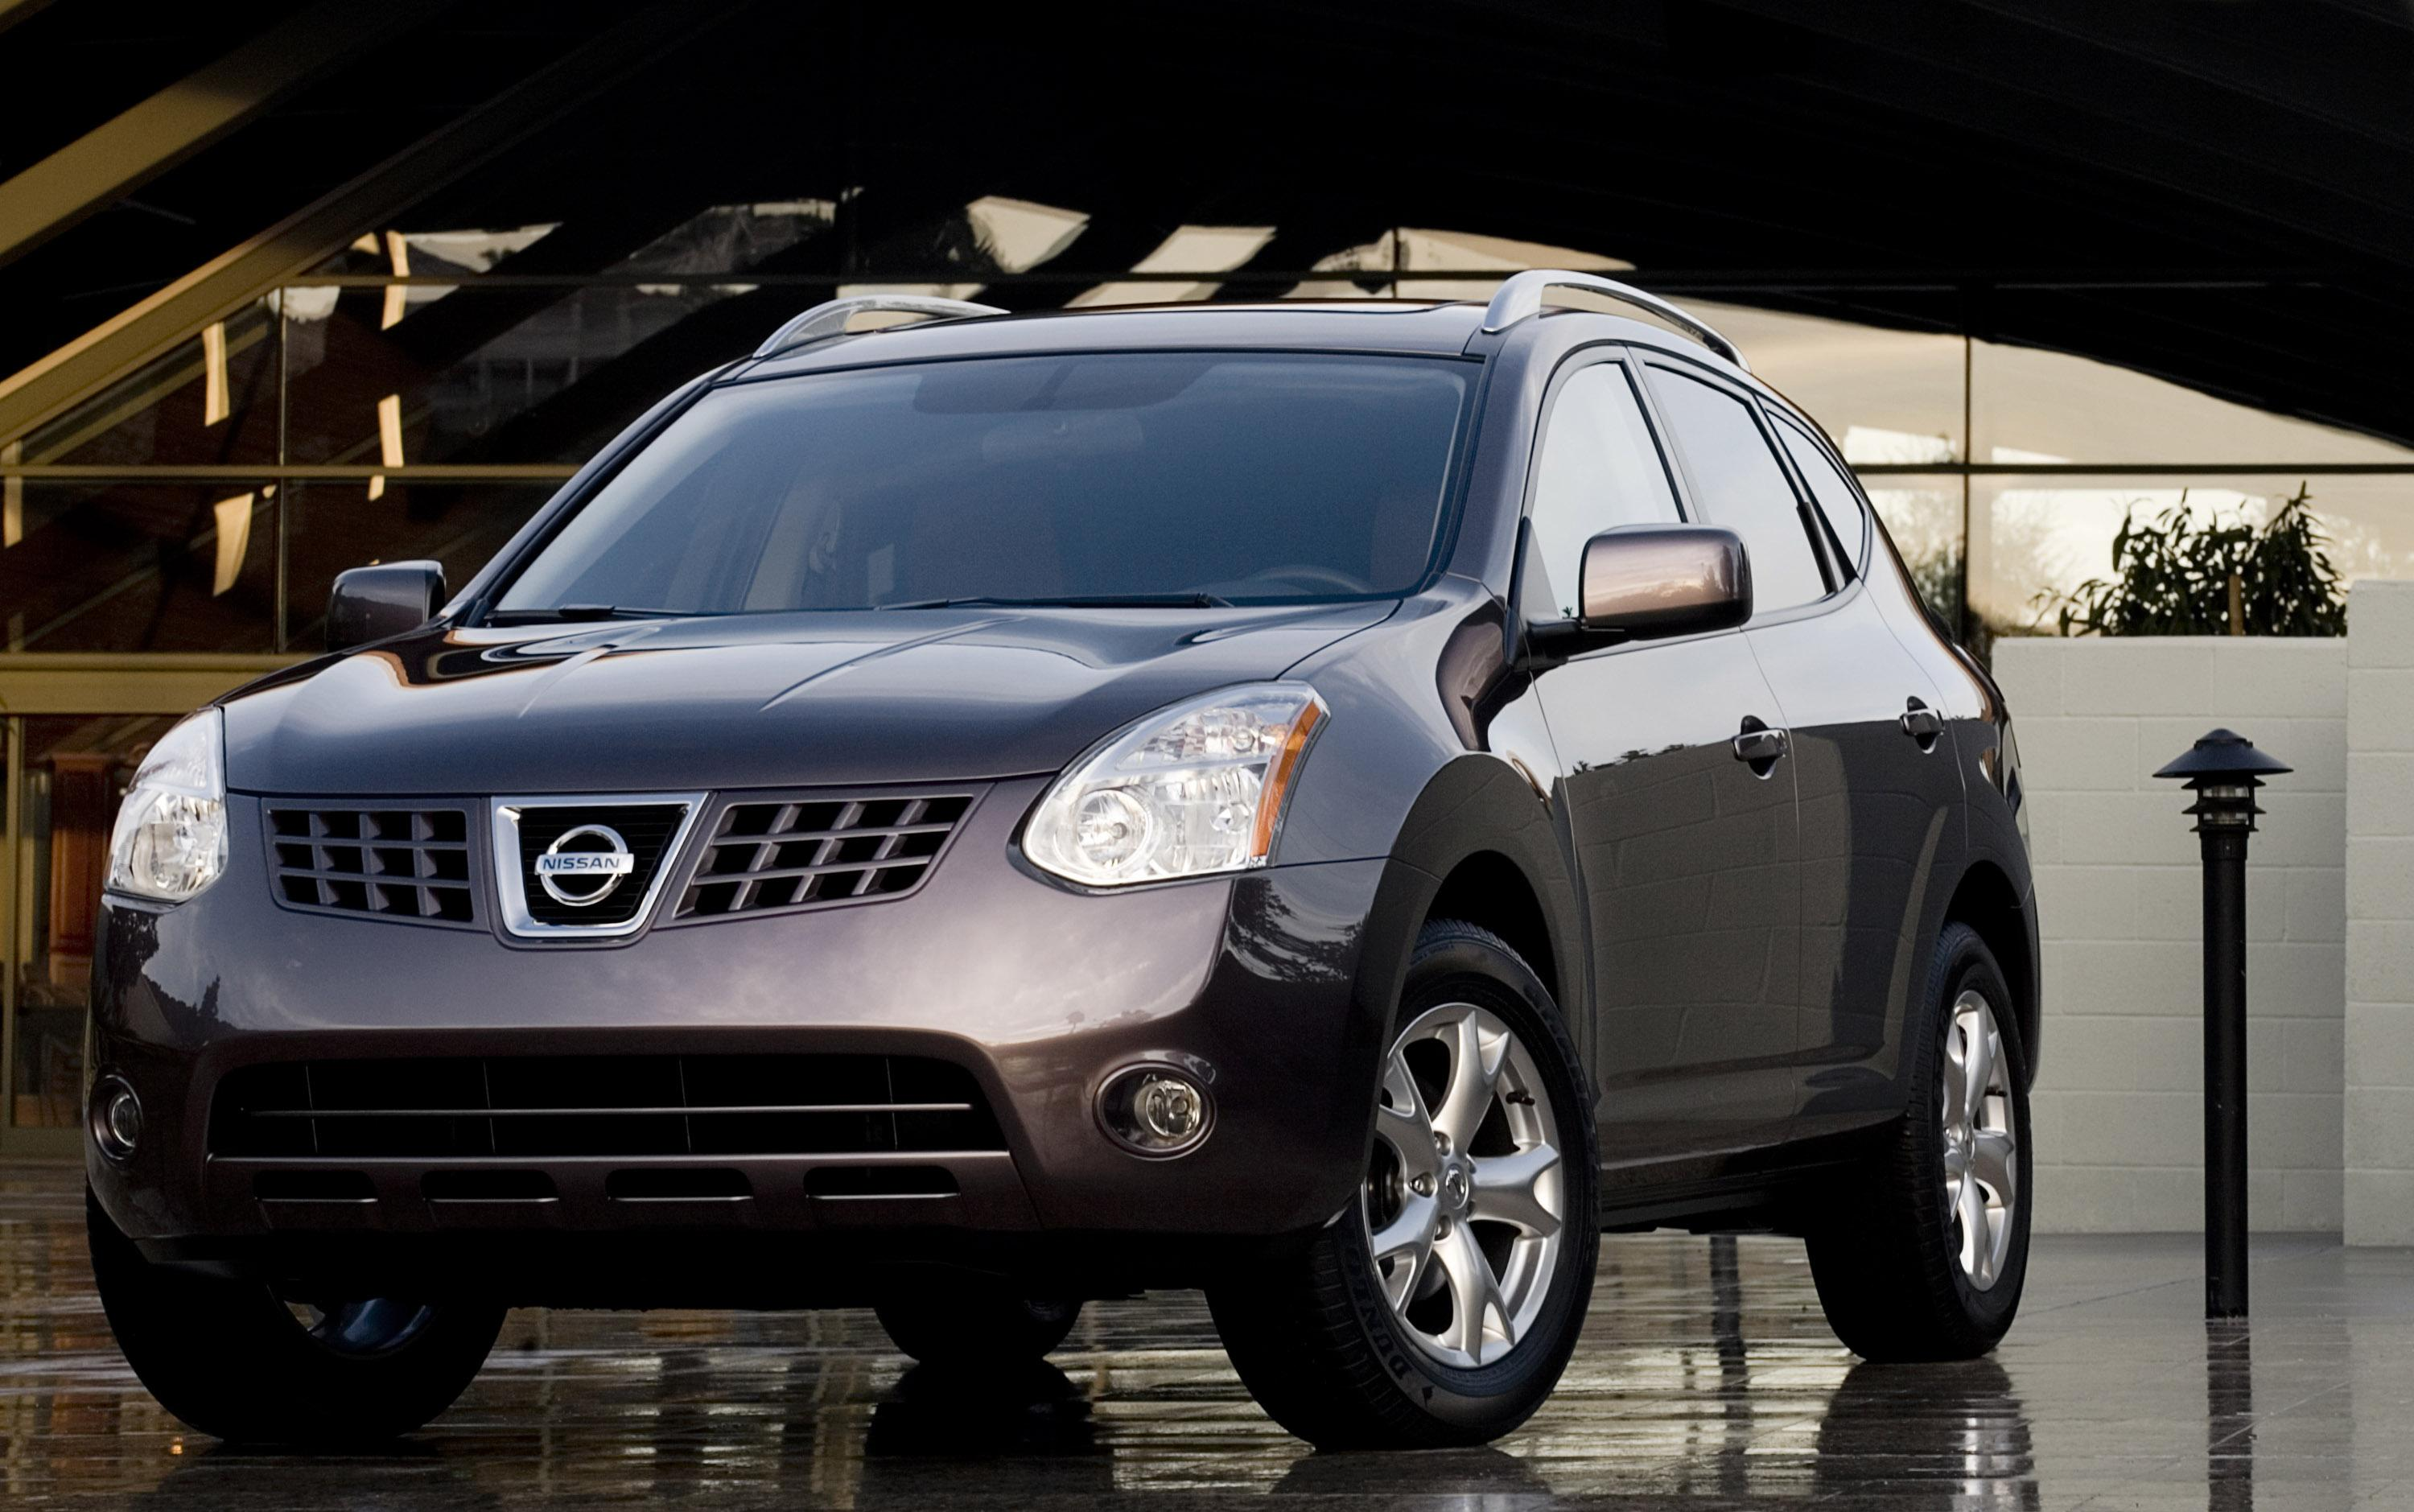 2009 Nissan Rogue Top Speed